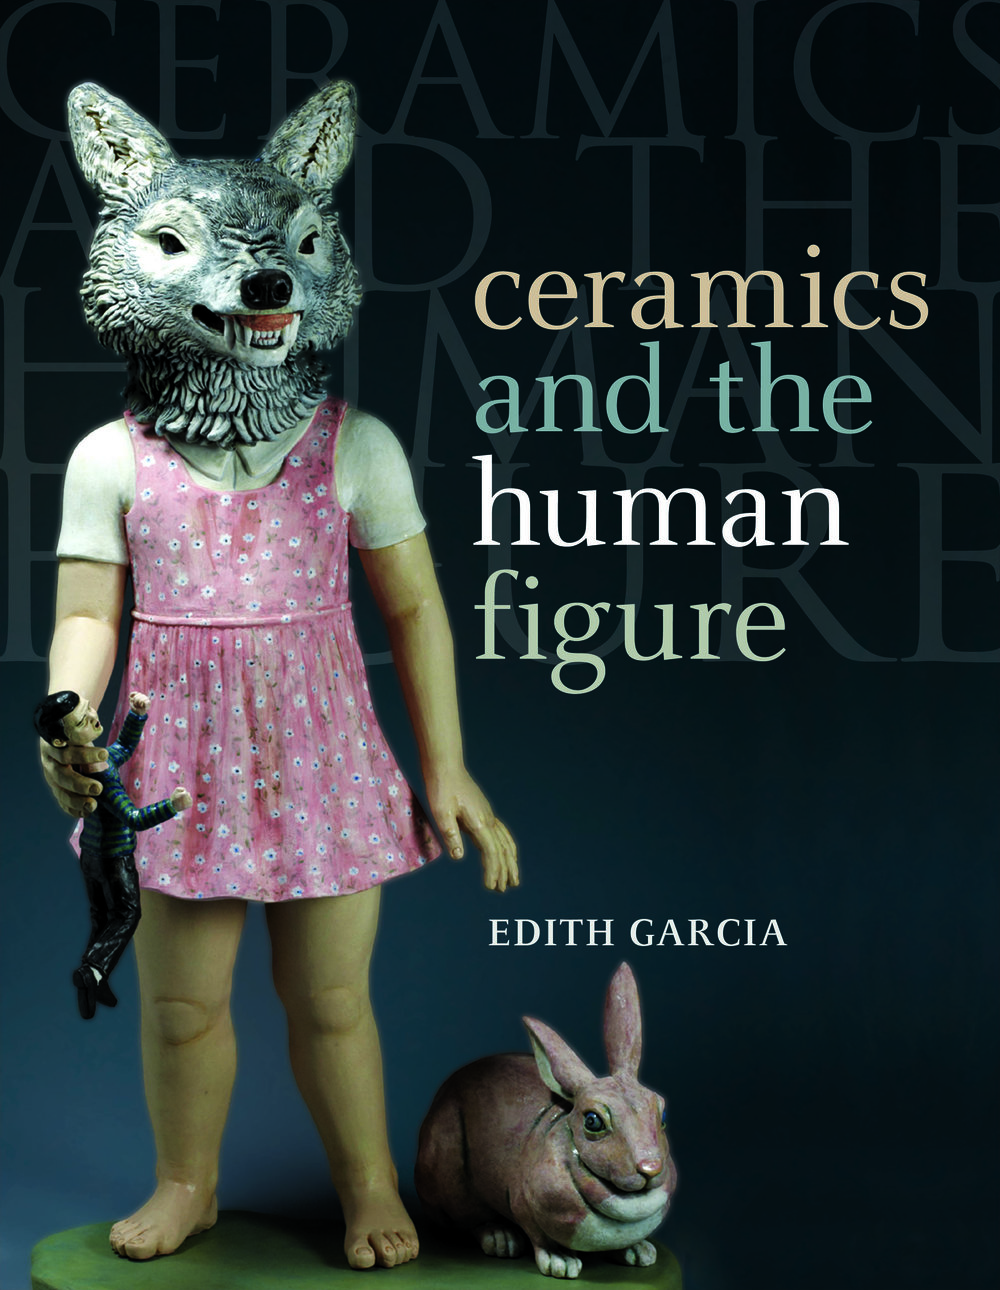 Ceramics and the Human Figure | Available on Amazon - Author of Ceramics and the Human FigureAn inside look into 40 international artists and their approach to working with the human figure and clay.Representation of the human form through artistic expression has always existed in clay form, and it continues to evolve today. From exploring the whole figure, through fragmentation to the use of the body as a means to create, artists today are working with clay and the human form in very unconventional ways across the globe. Contemporary artists have learned to play with the possibilities of materials and form more so than ever before, with digital technologies enabling and enhancing the creative process. This publication features works by key ceramic artists that work within the realm of the human form, showcasing and discussing individual artists with practices within the field of installation and sculpture as well as those incorporating new technologies. The artists are divided by themes, with each chapter giving a short introduction, and then going on to display the work and ideas of each, showing the large variety of work being made today. A chapter is also included on making methods, giving making sequences of the more innovative and challenging methods used by some of these artists.